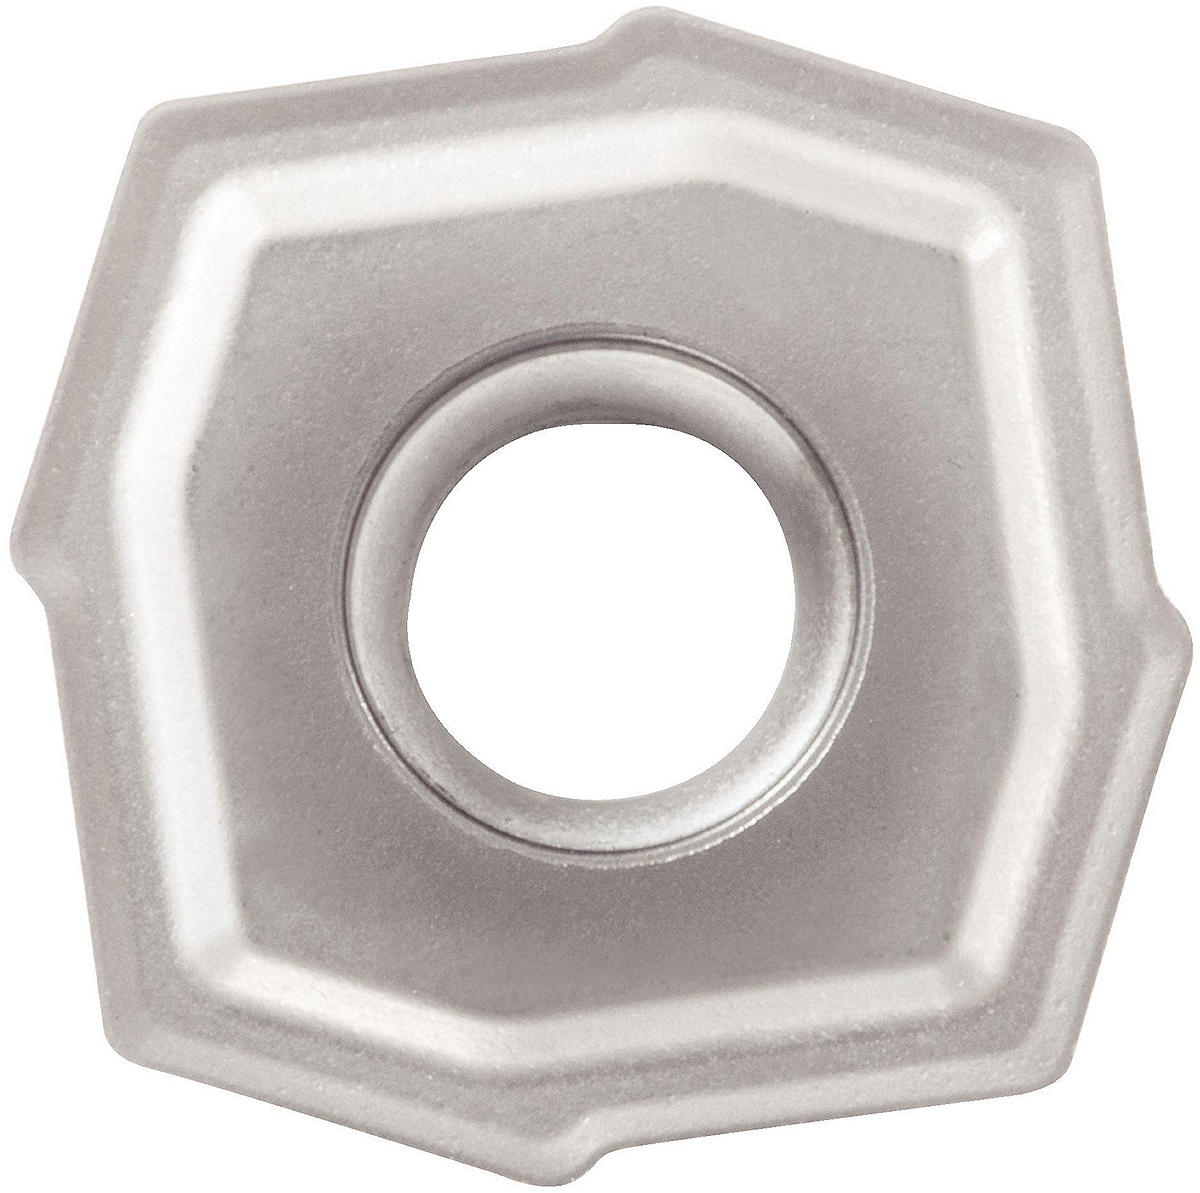 TC4 • Center Inserts • Aluminum • V36